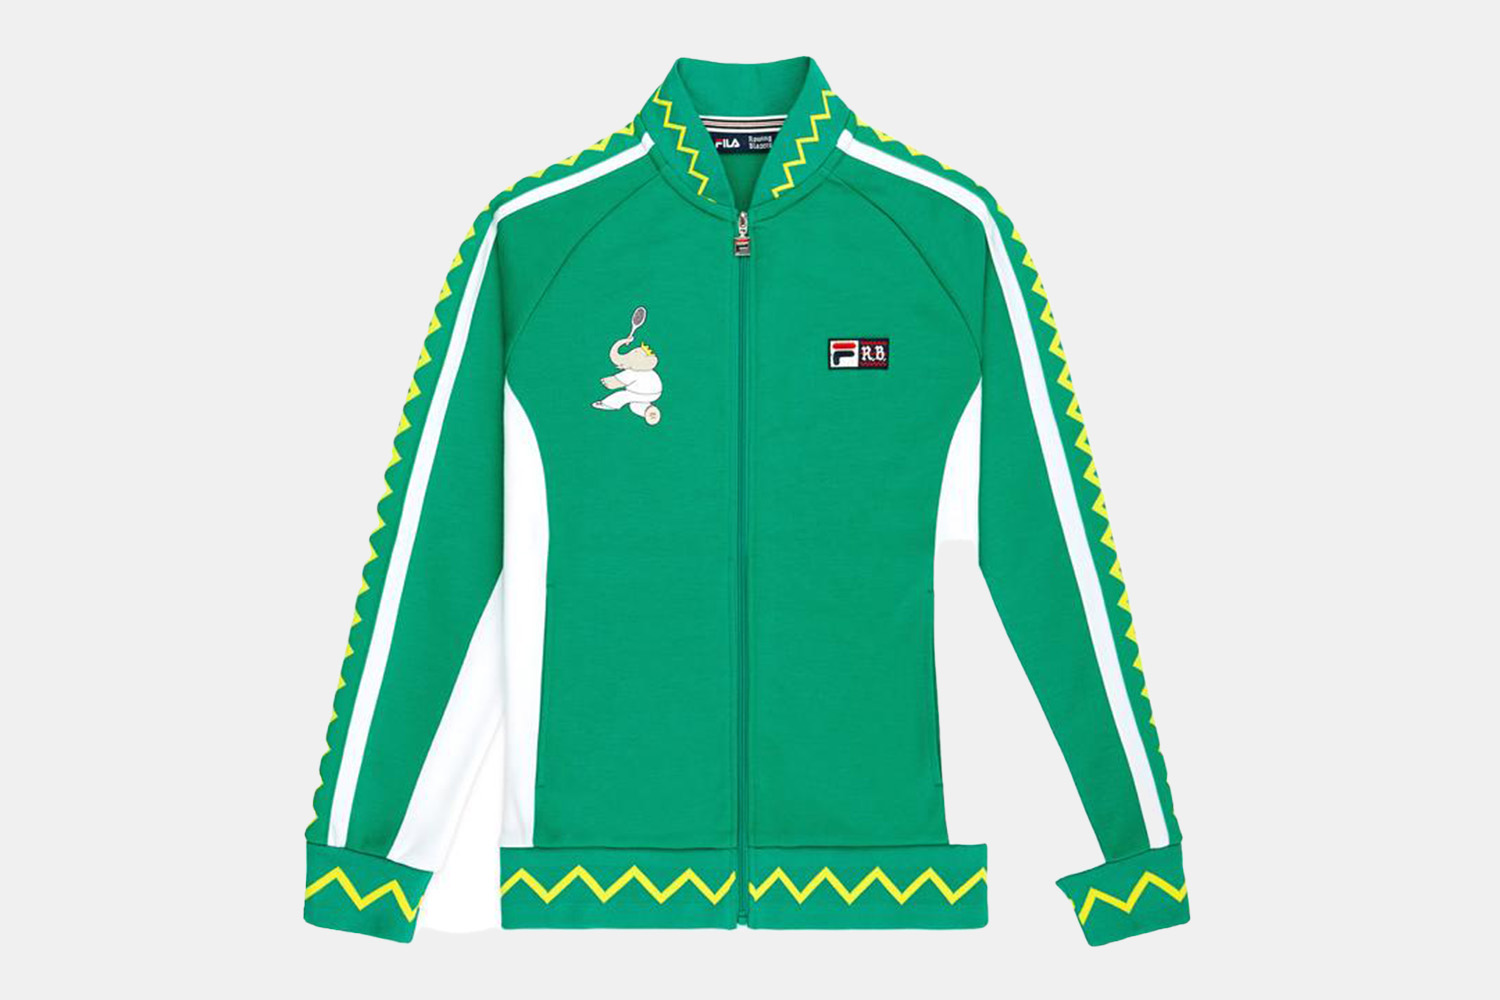 a green embroidered track jacket.